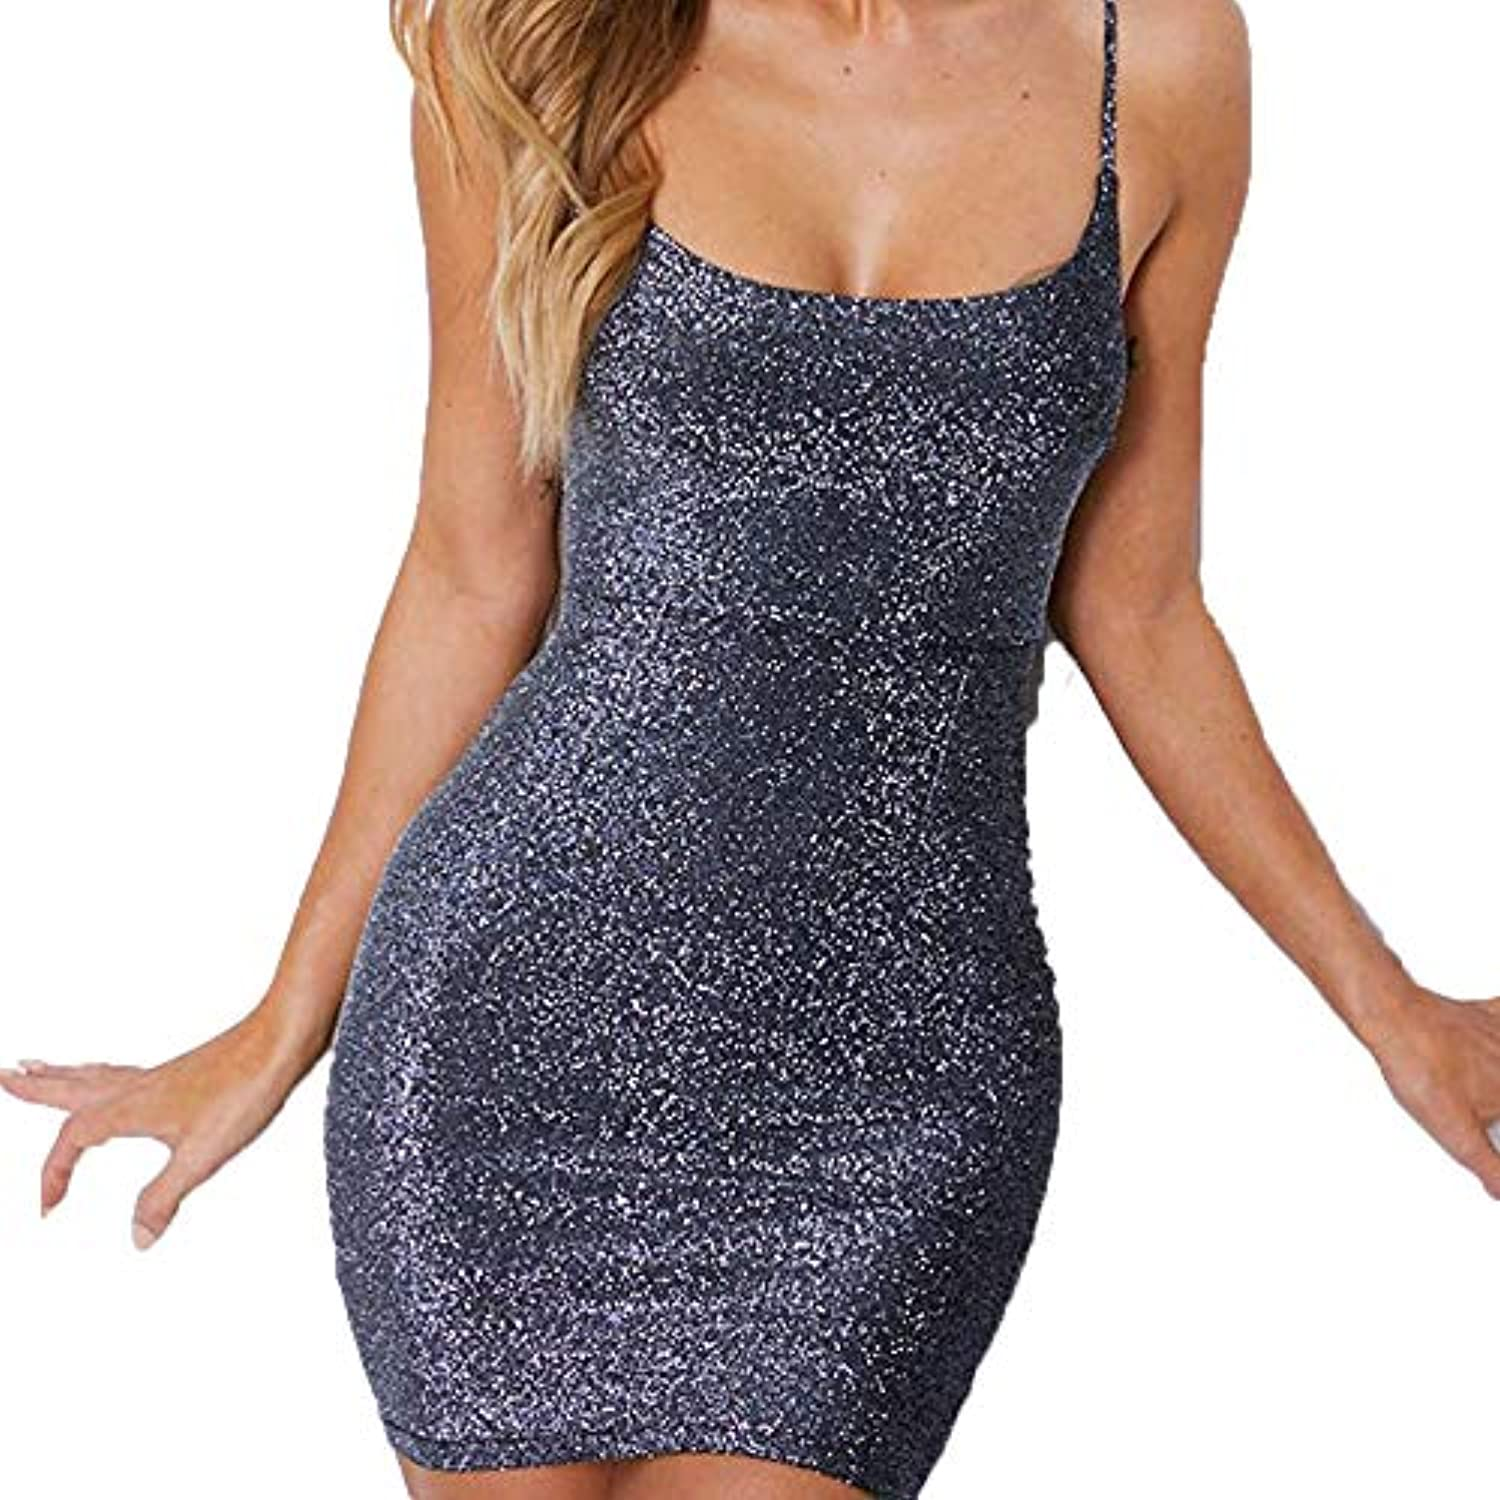 Chainmail Party Dress Women's Sexy Glitter Spagetti Straps Lace Up Back Bandage Bodycon Mini Club Party Dress